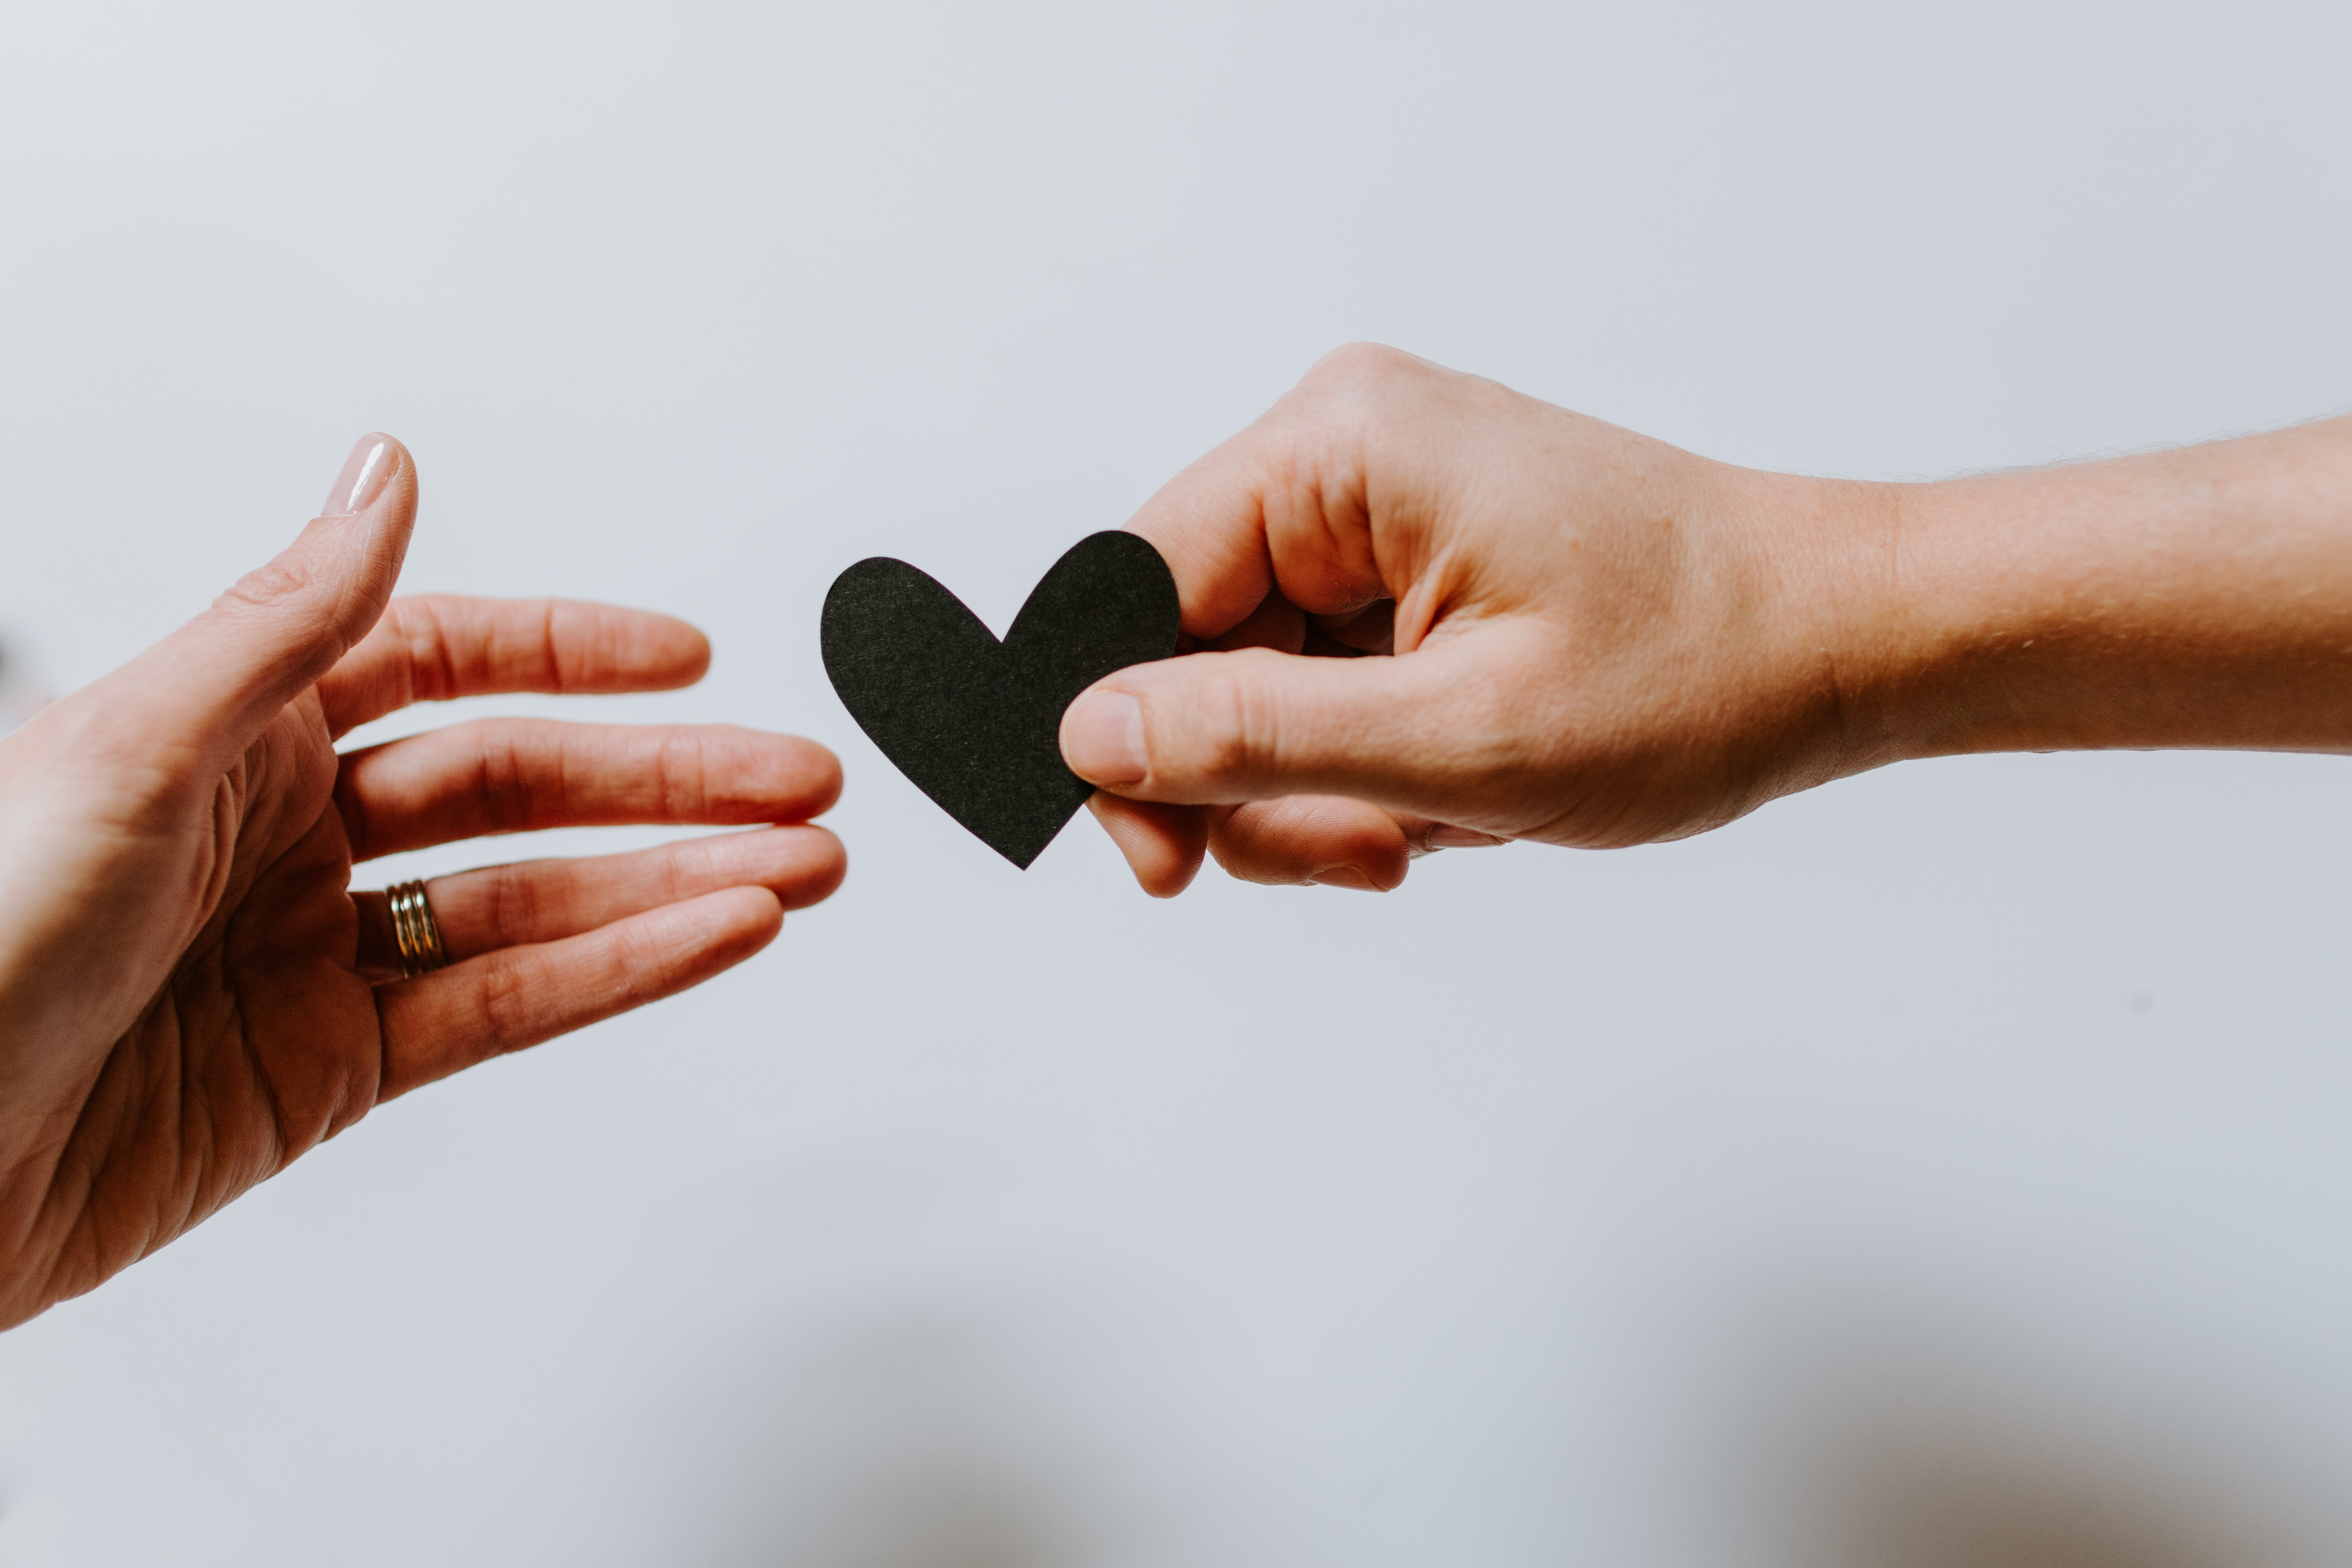 a hand gives a paper heart to another hand